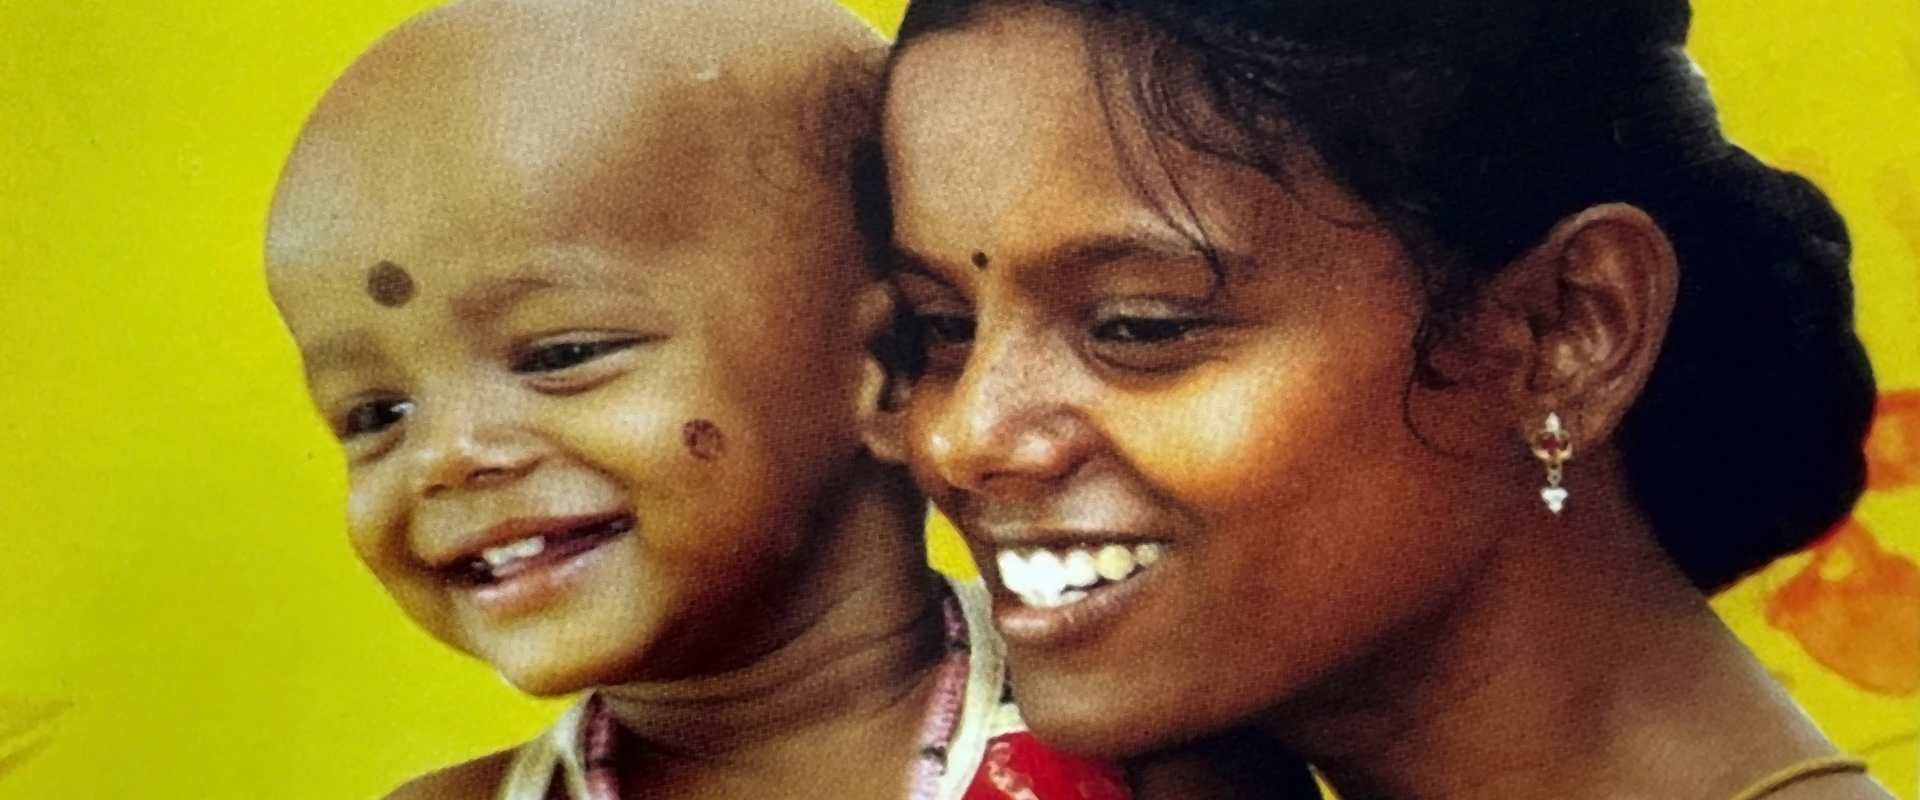 Mother and Child Cancer Patient